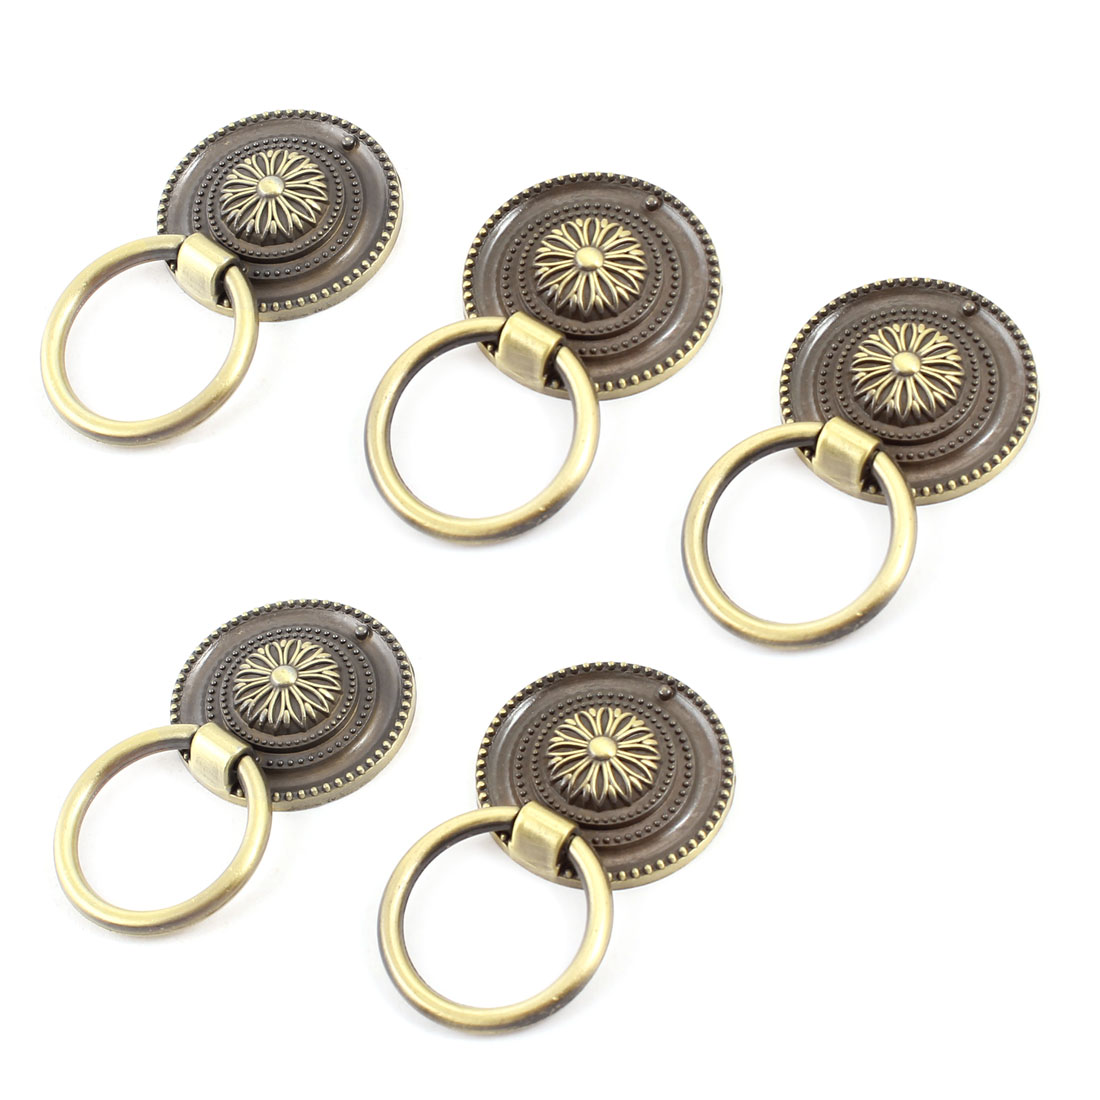 "5PCS Bronze Tone Flower Pattern Metal Ring Furniture Door Pull Handle Grip 1.7"" Dia"